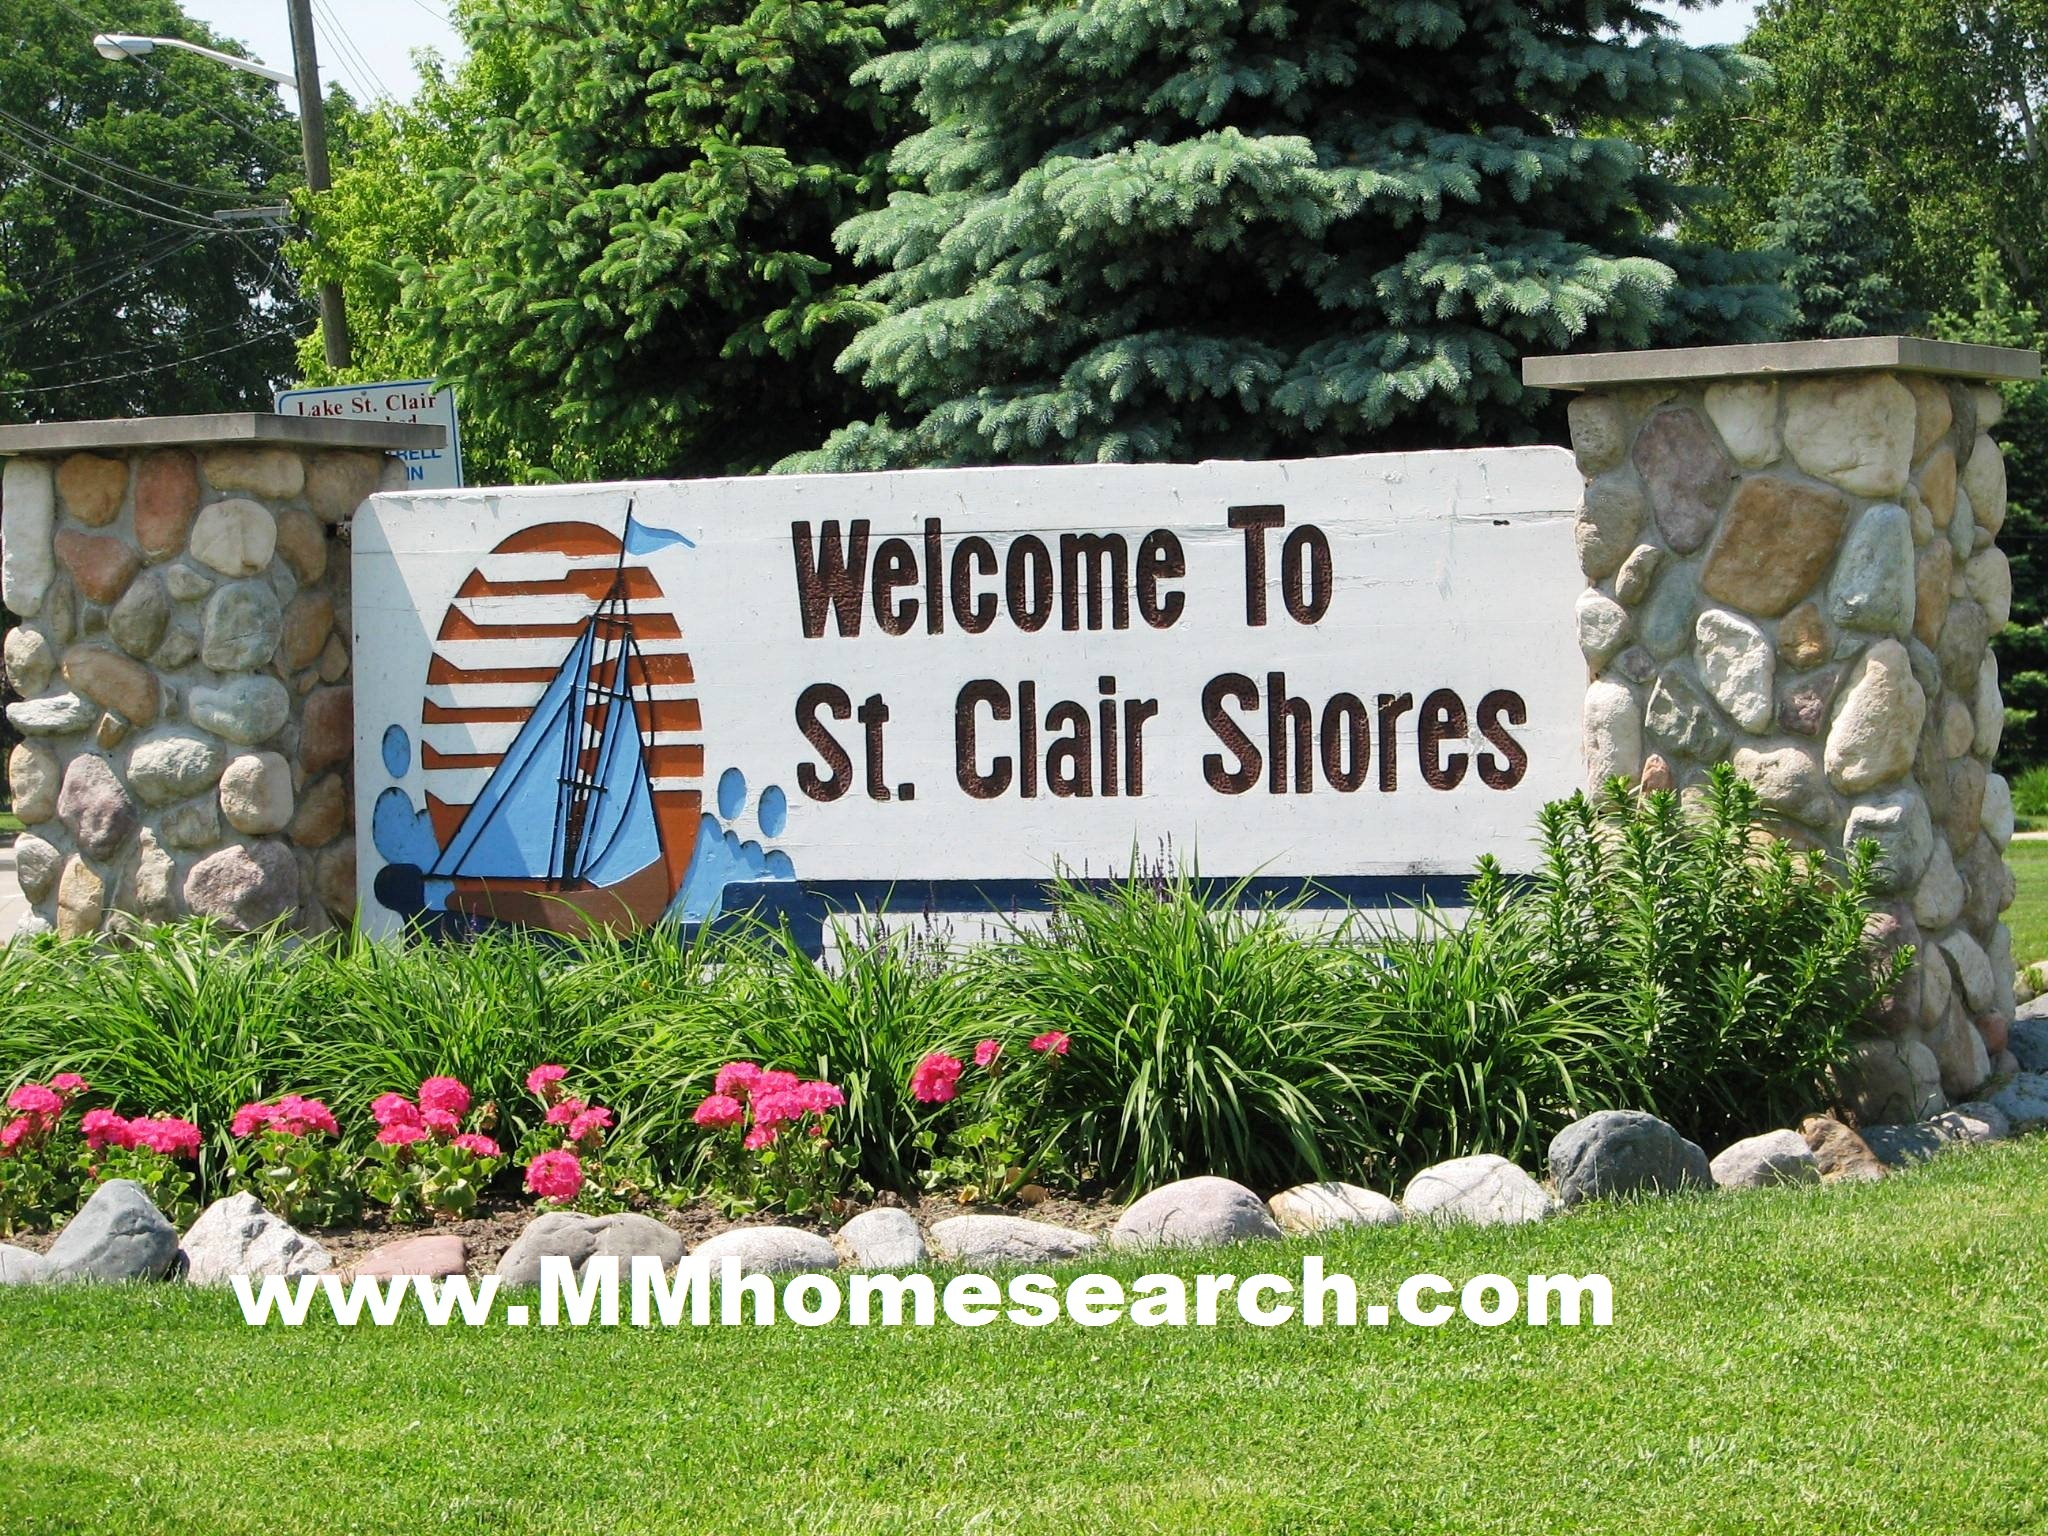 saint clair shores singles & personals 21619 finlan st, saint clair shores, mi is a 2 bed, 1 bath, 810 sq ft single-family  home available for rent in saint clair shores, michigan.